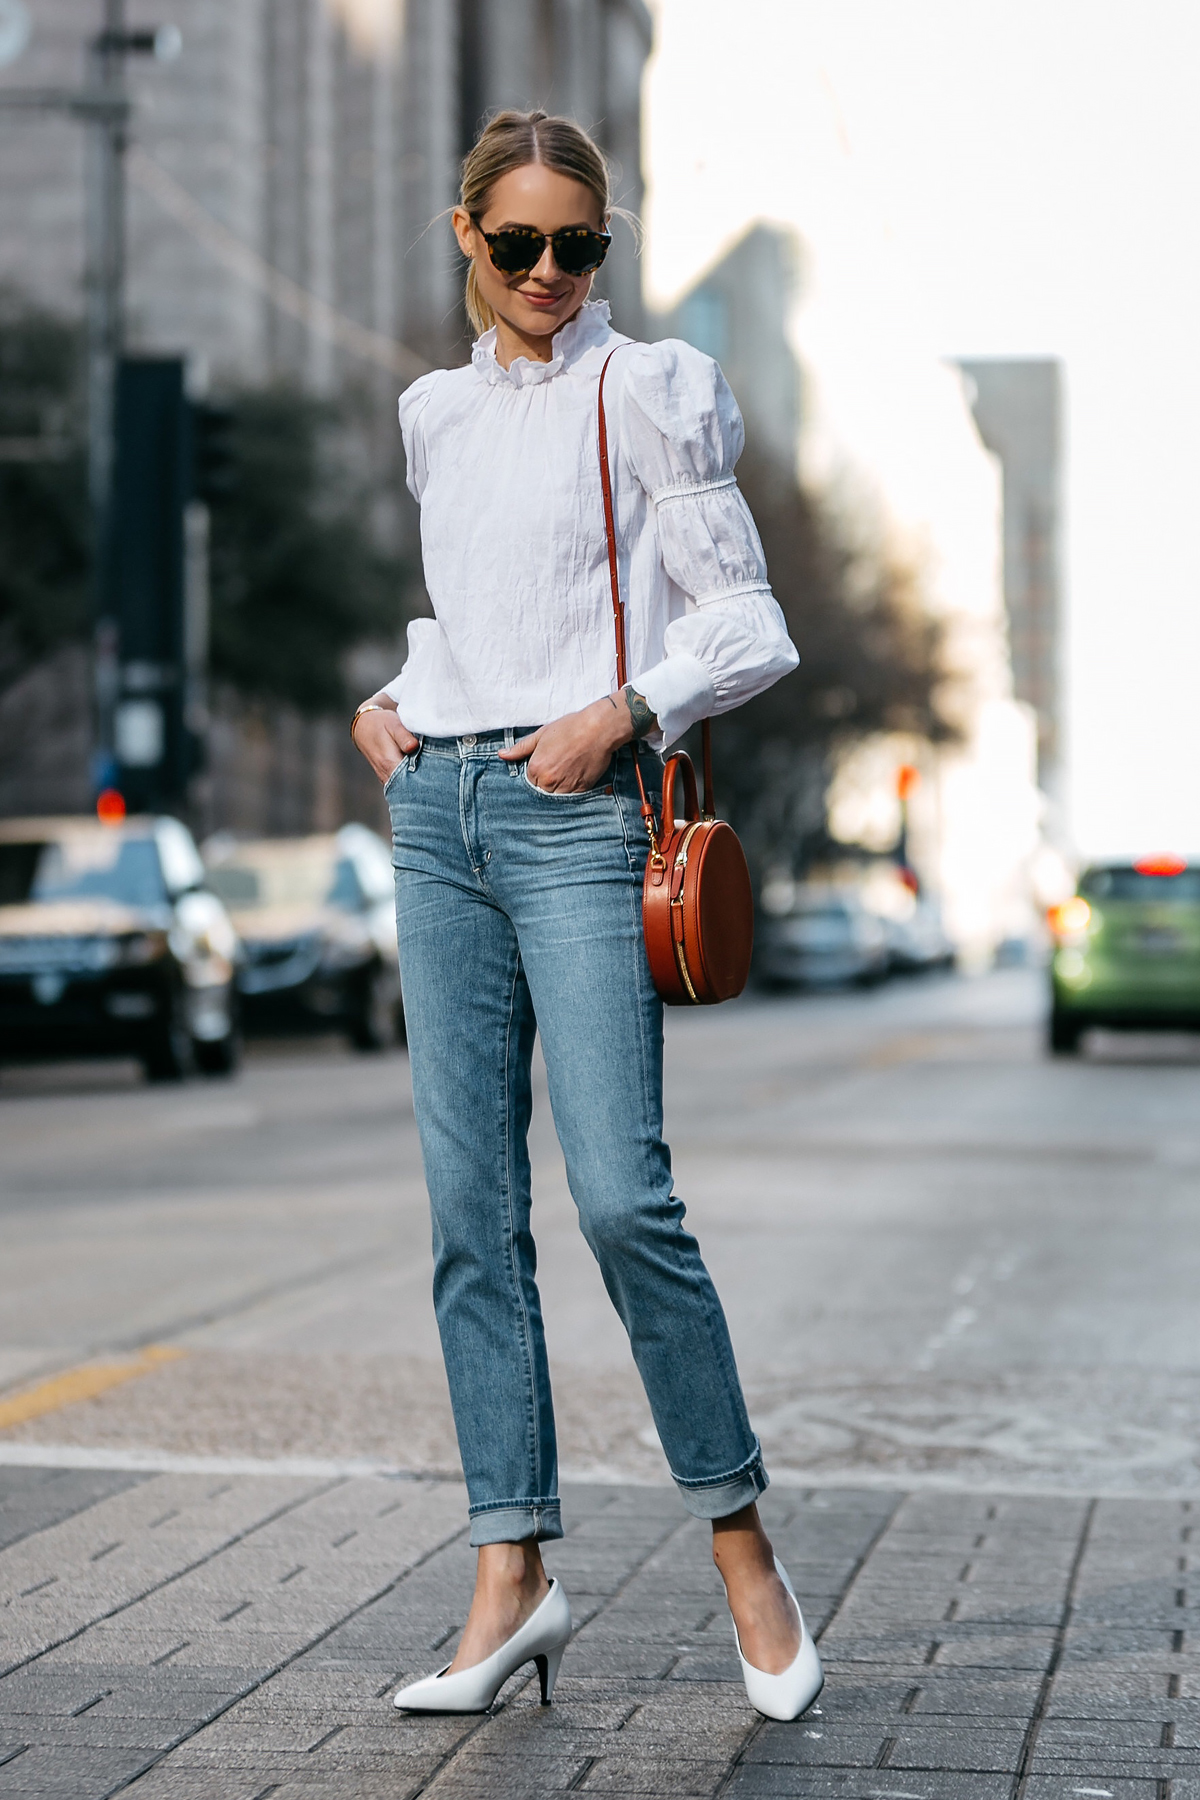 How To Wear White Ruffle Top